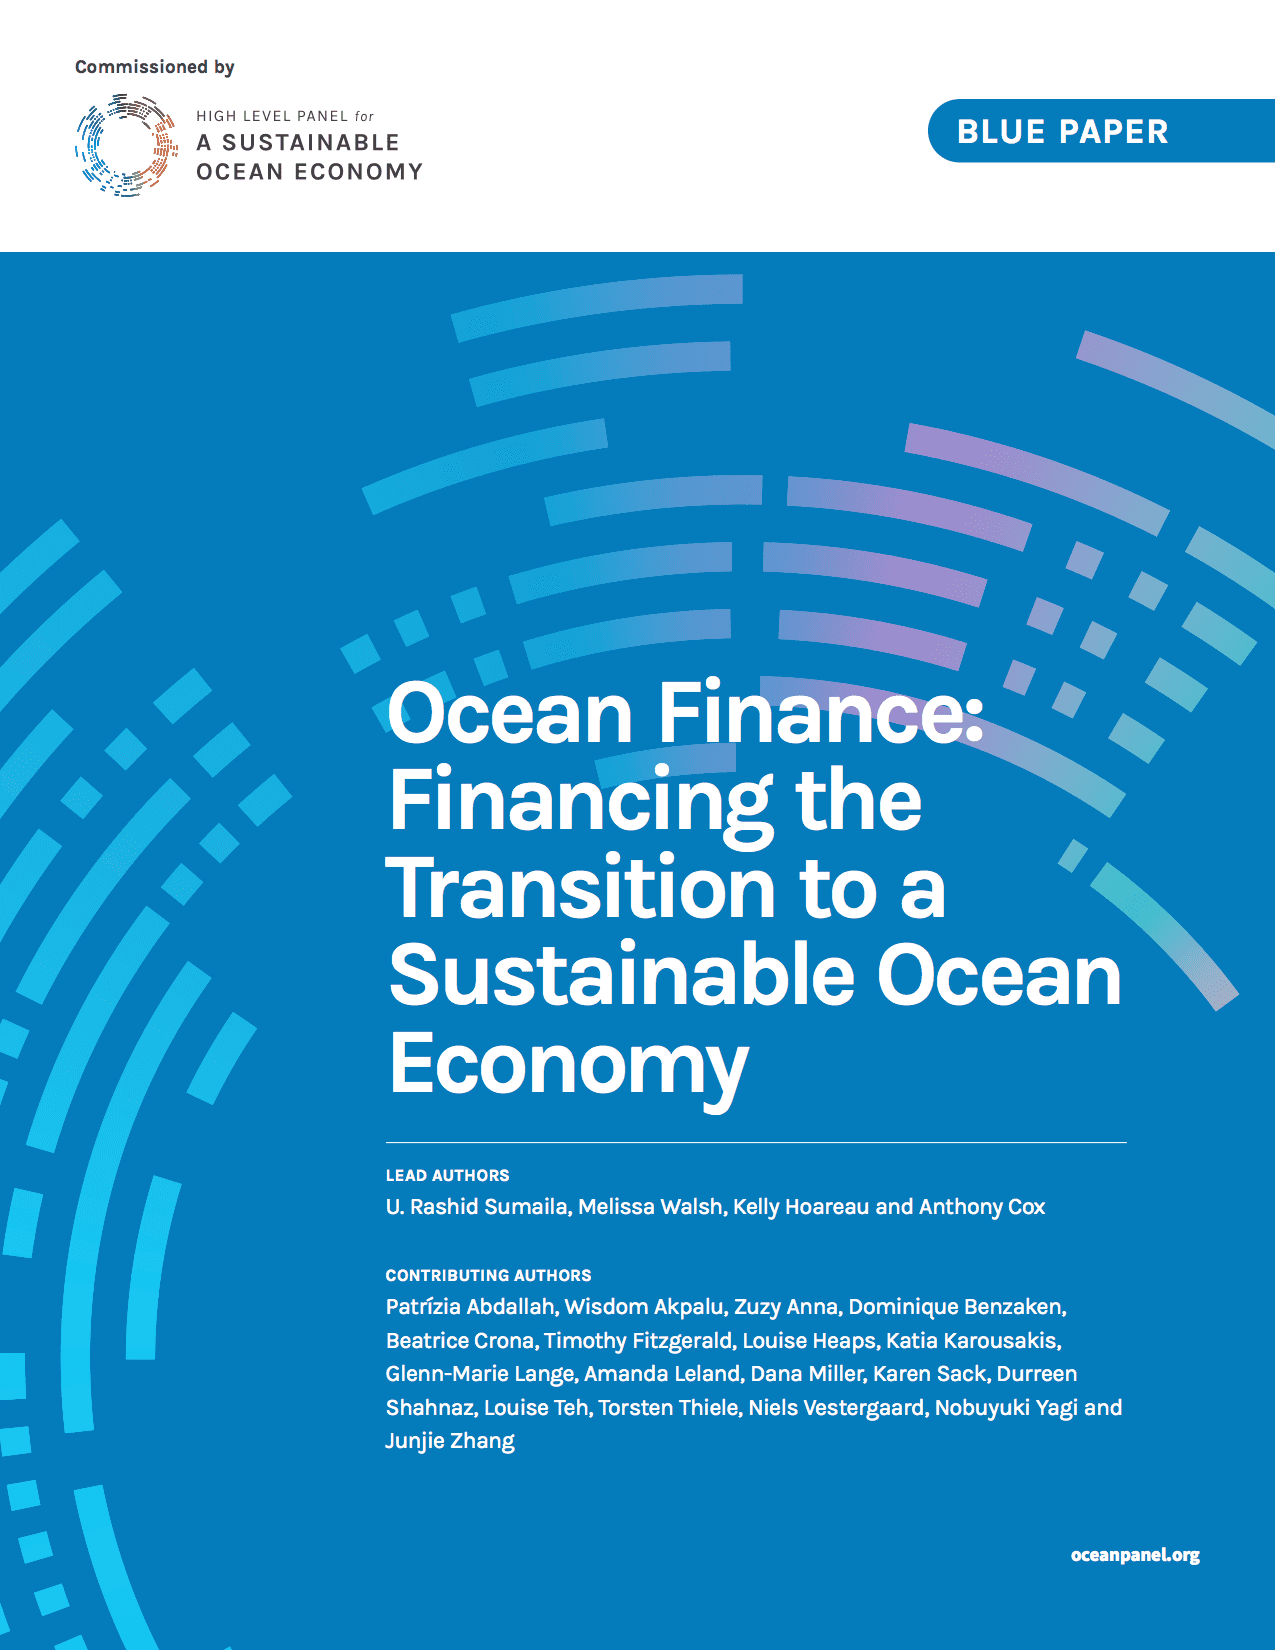 Cover of the report for the blue paper: Ocean Finance